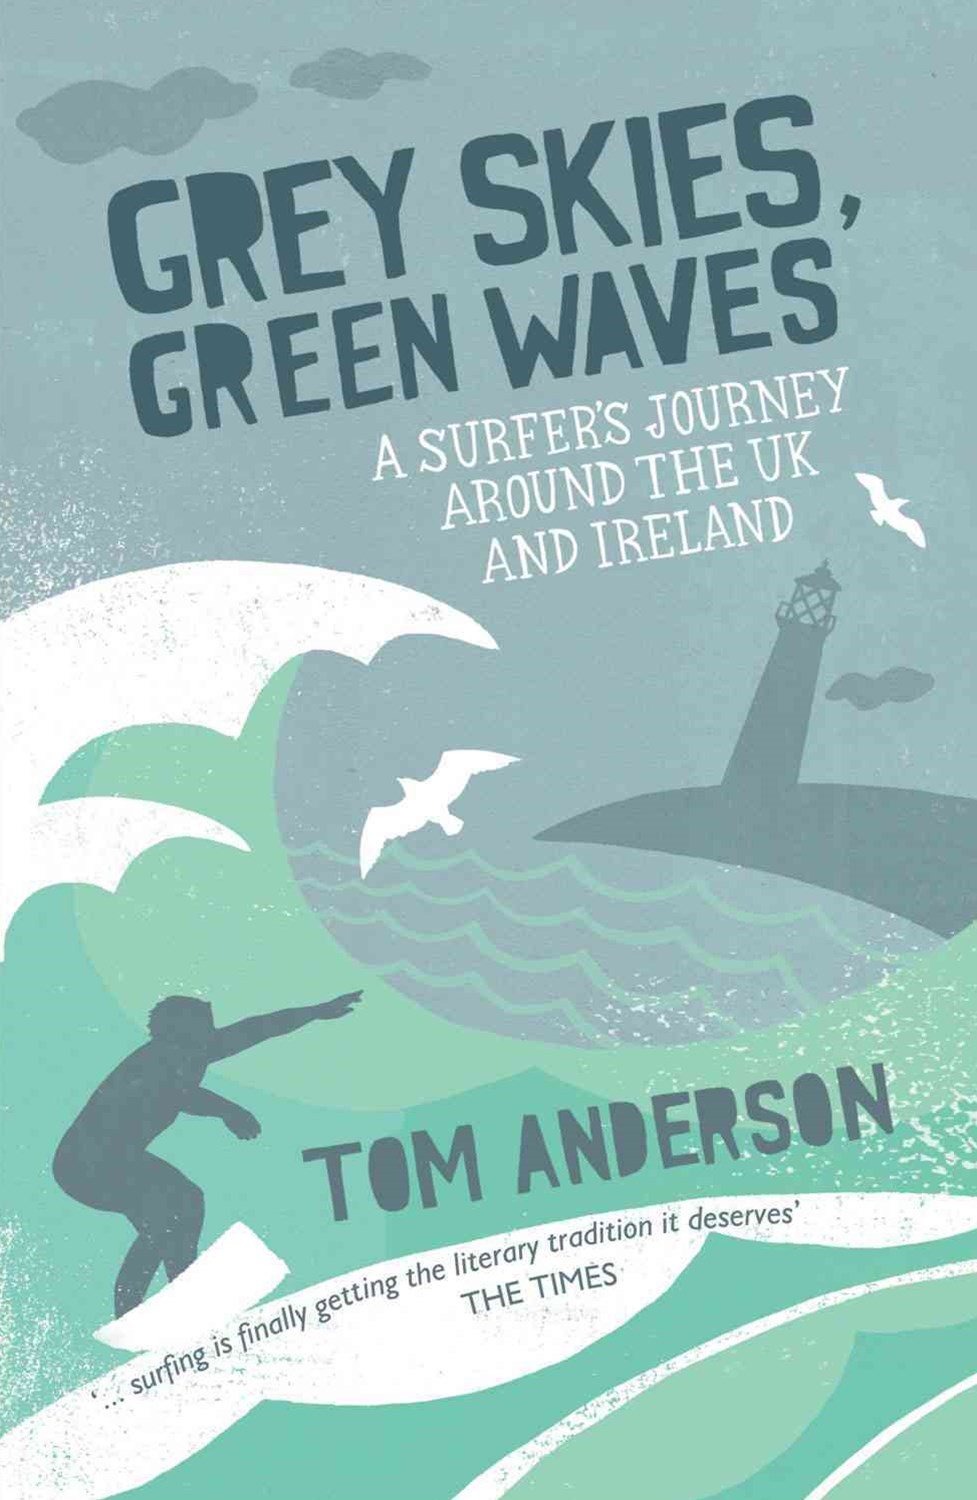 Grey Skies, Green Waves: a Journey Through UK and Ireland Surf Cultures